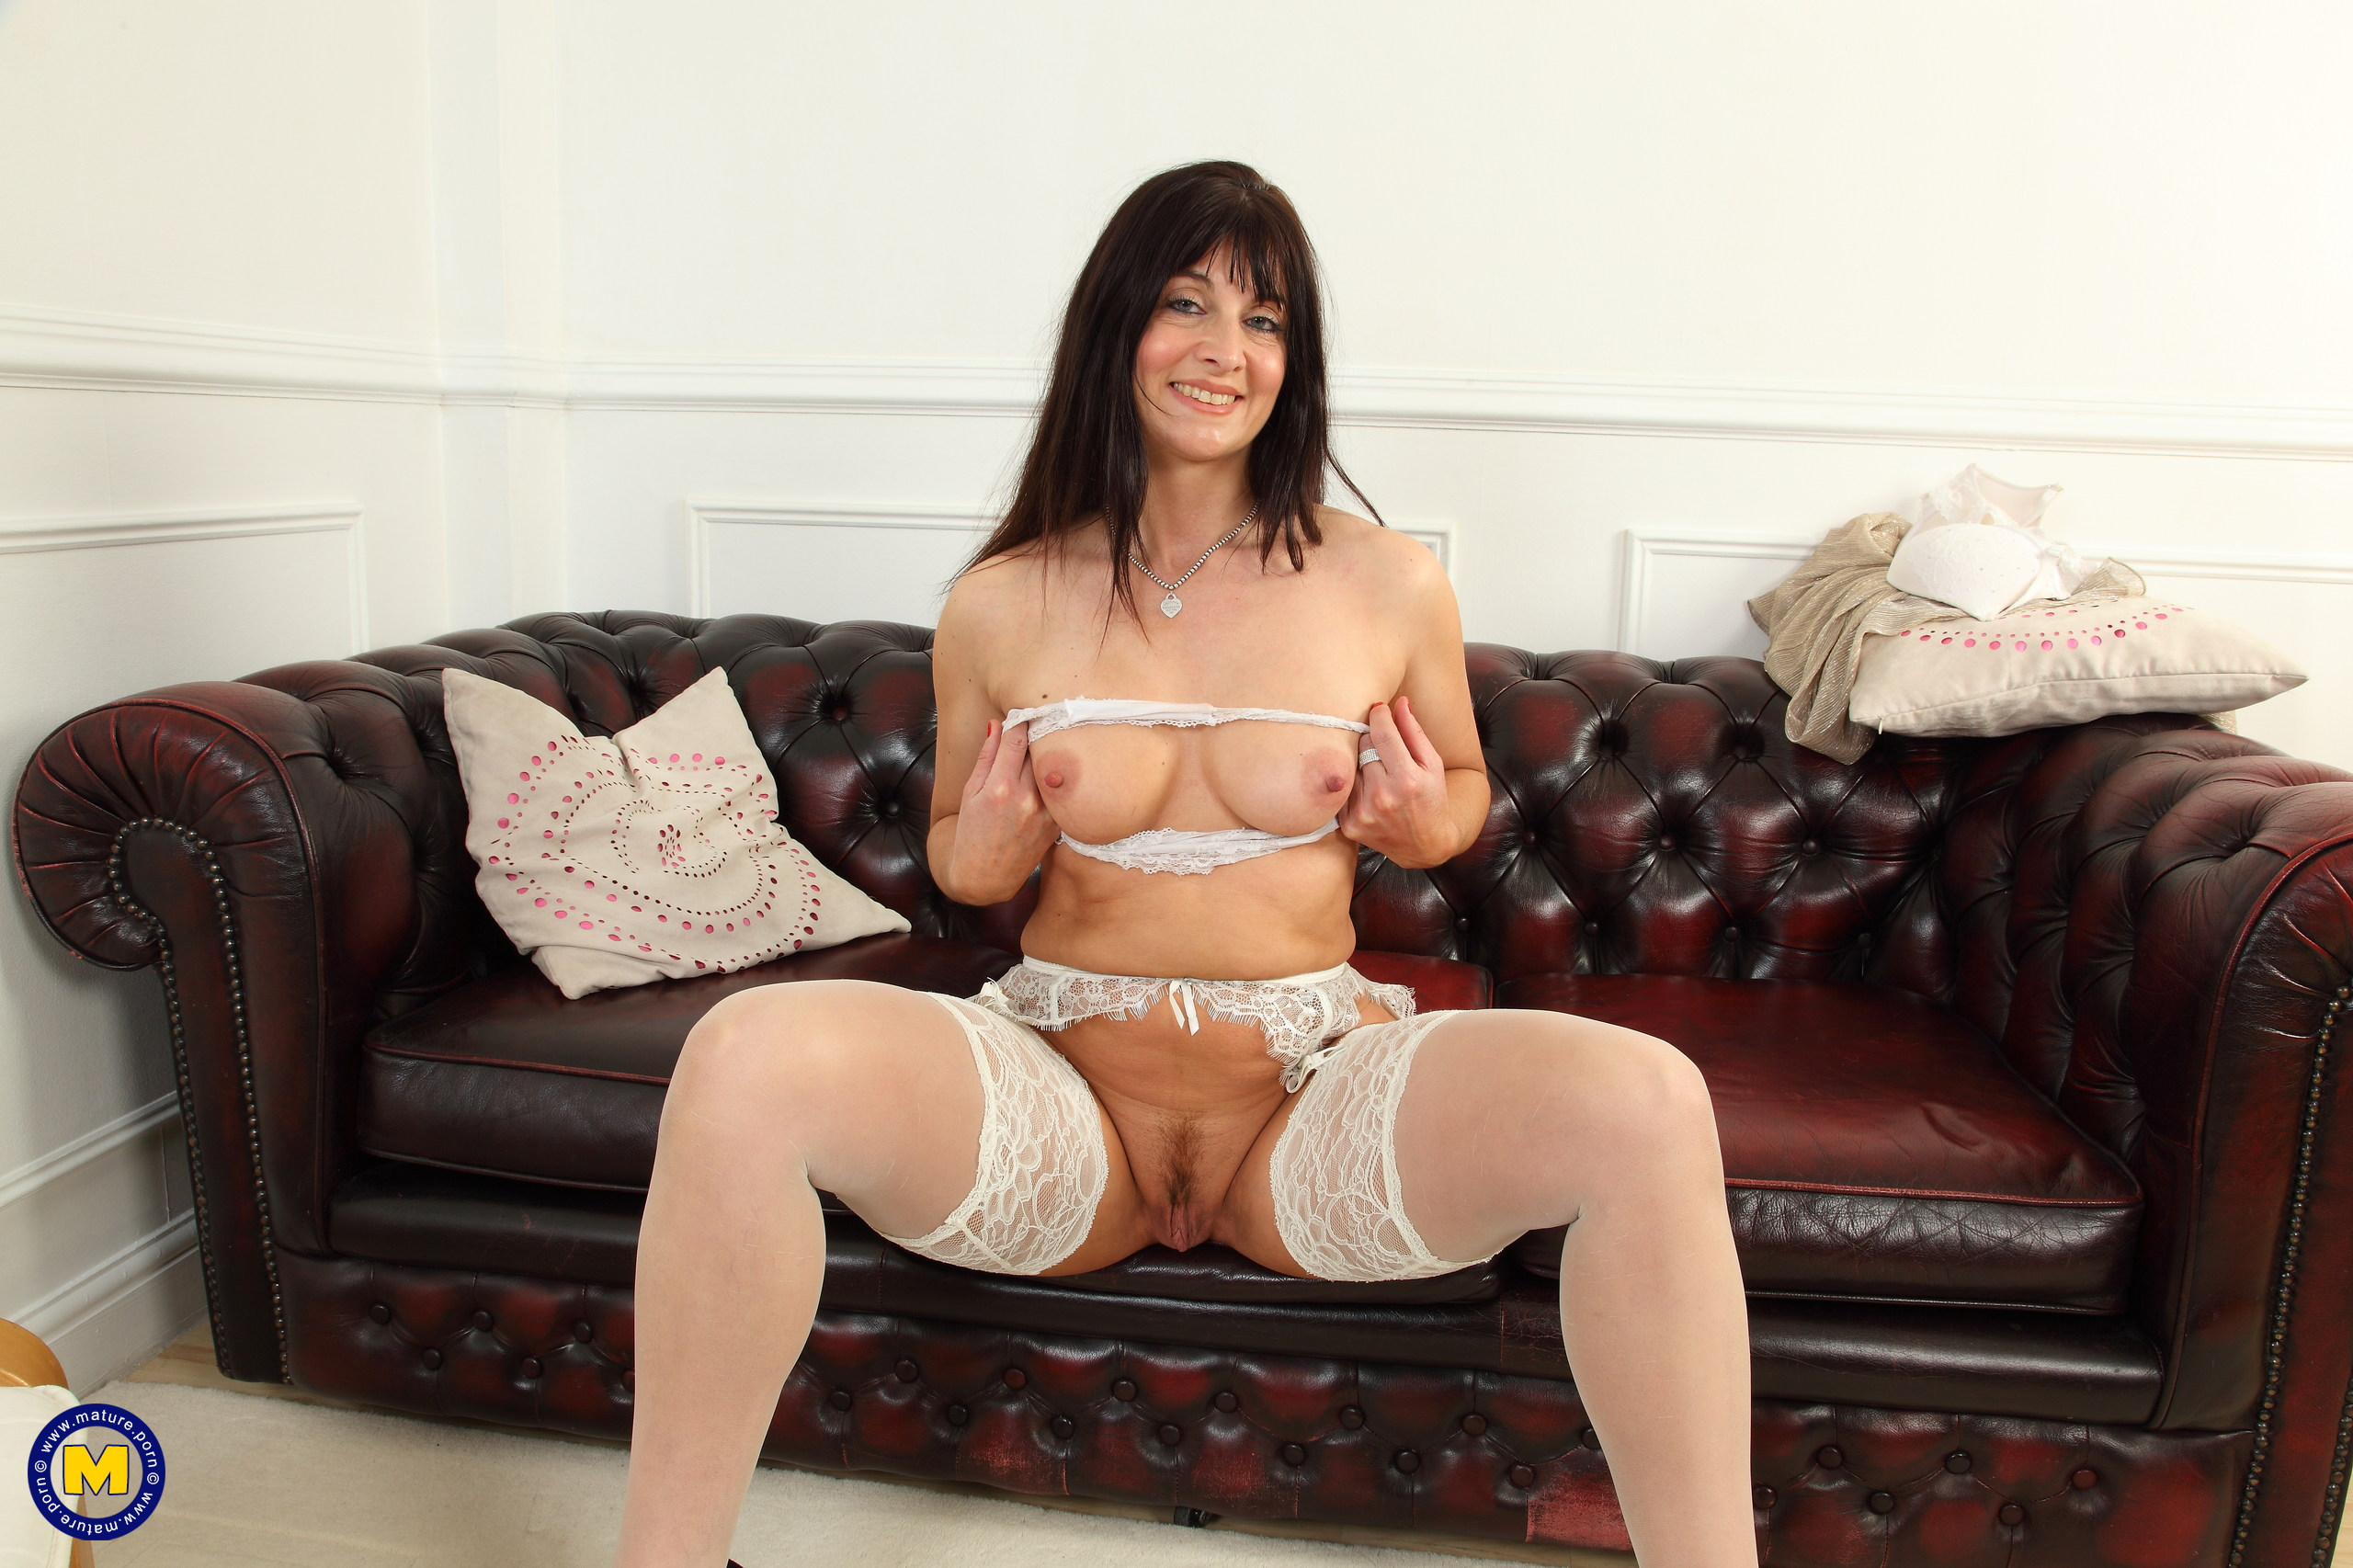 Warm hot British housewife frolicking with her immense faux penis